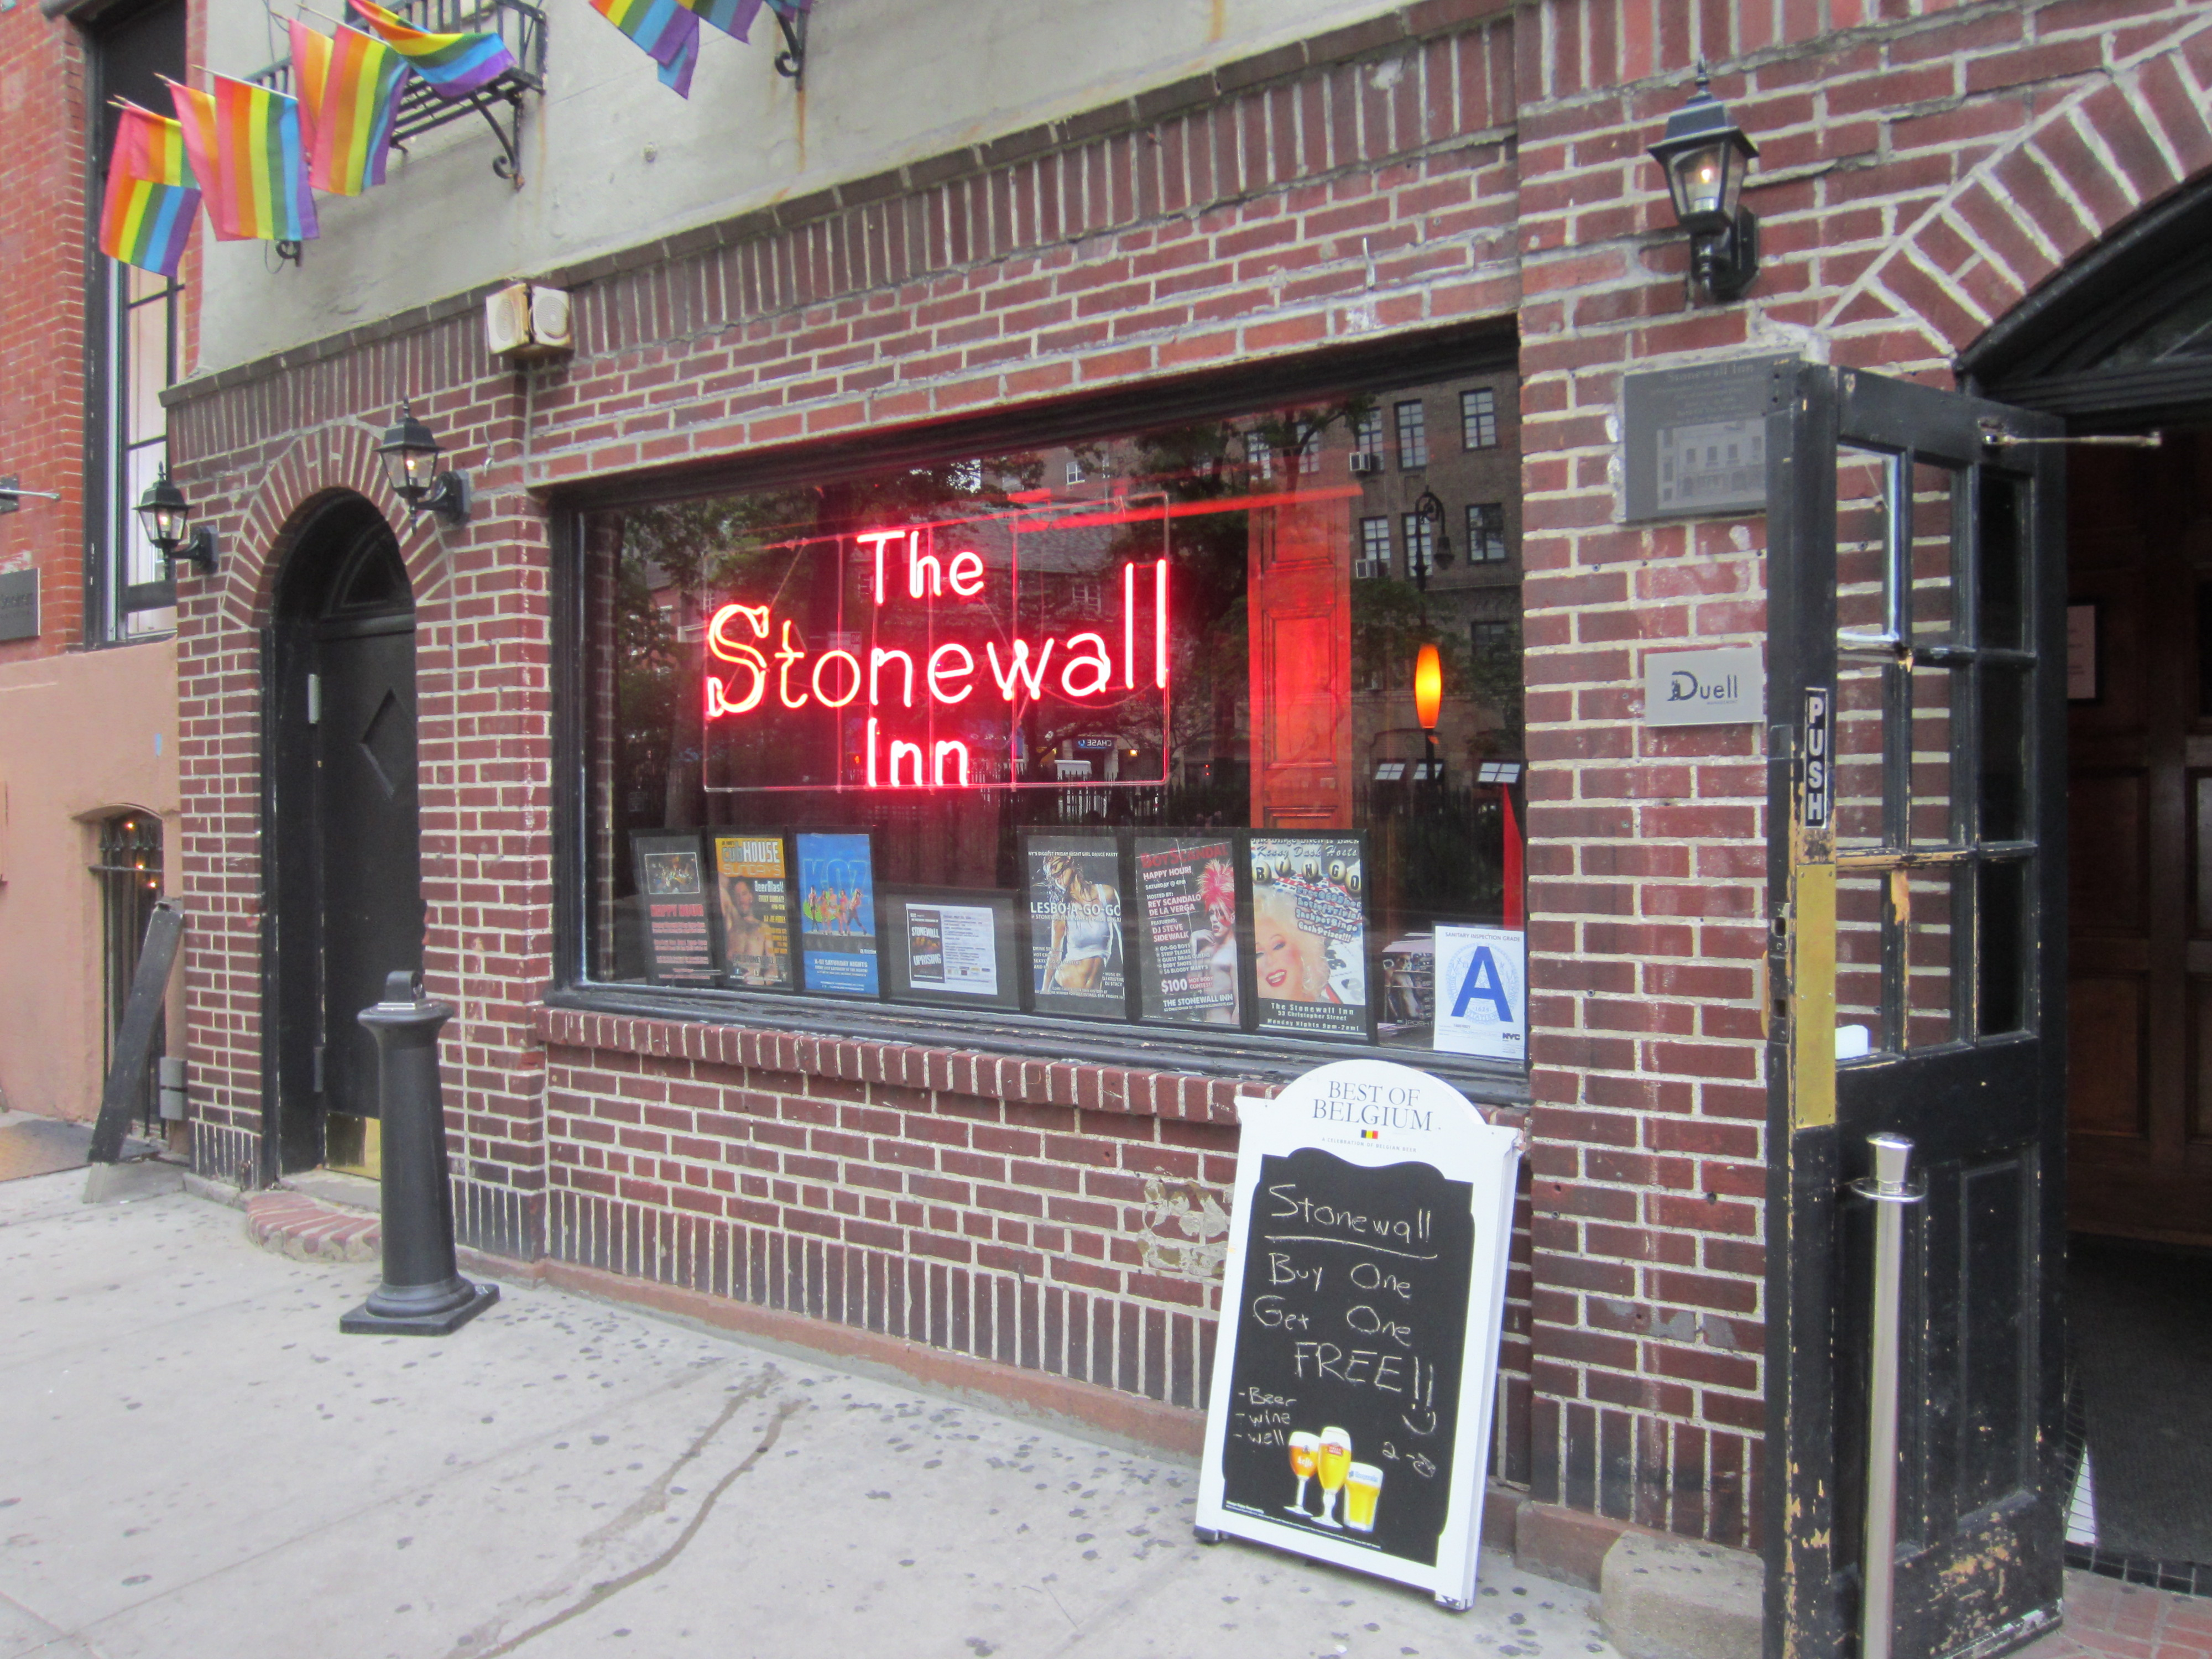 hispanic singles in stonewall The stonewall bar association of georgia, inc (stonewall) is a professional association of attorneys, judges, law students, paralegals and other legal professionals who support the rights of lesbian, gay, bisexual and transgender people, and who oppose discrimination based upon sexual orientation or gender identity.